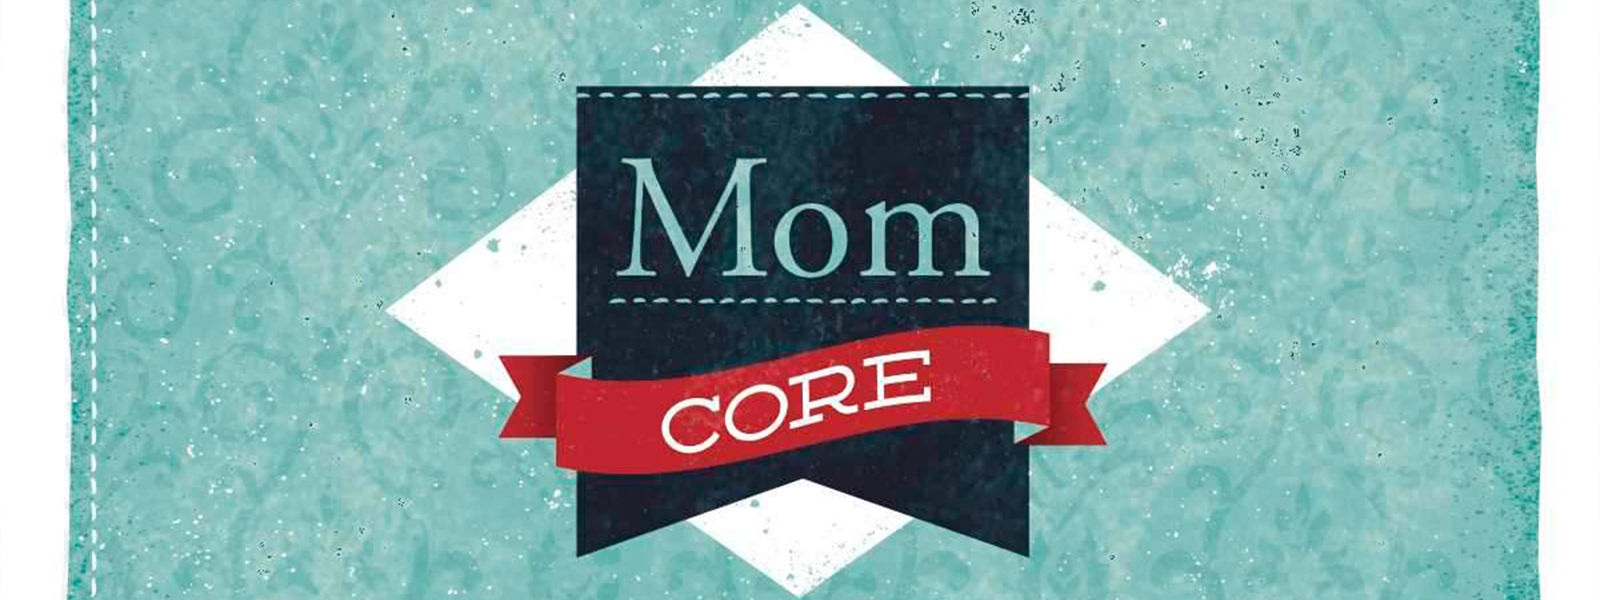 RightNow Media At Work :: Streaming Video : Mom Core : Karen Stubbs : Birds  on a Wire